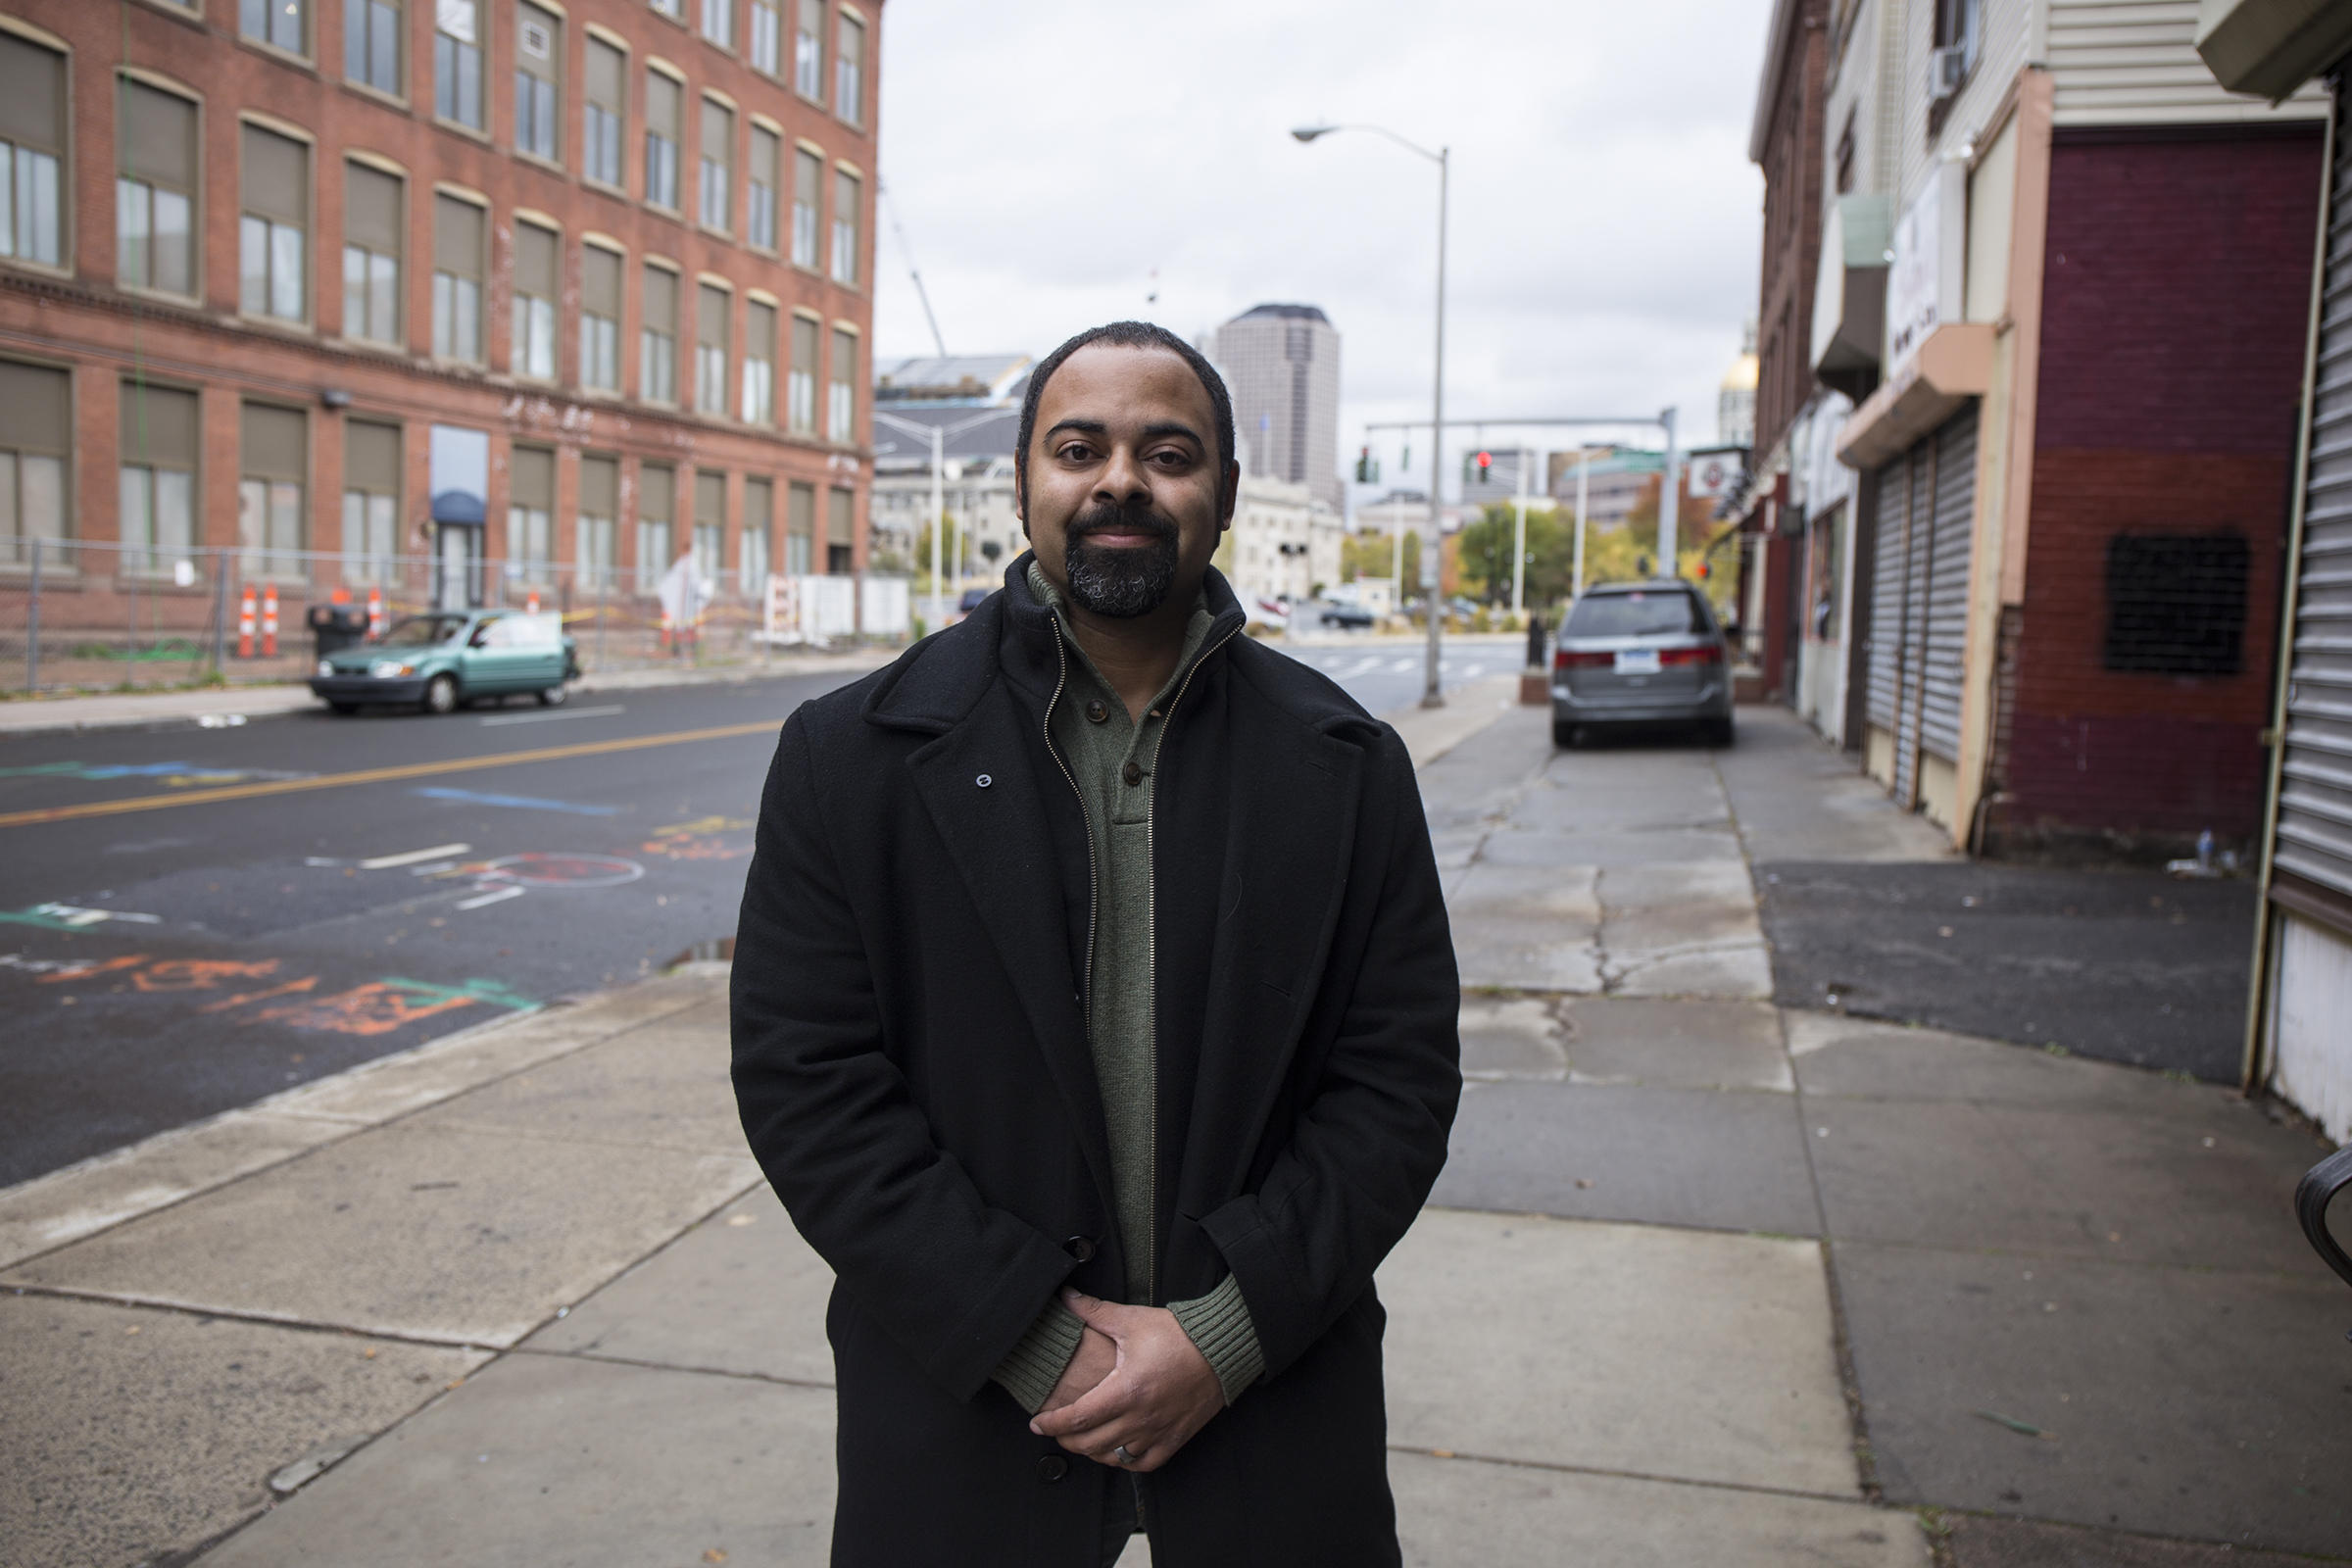 Aaron Gill on the sidewalk outside the building he purchased and renovated with his wife on the edge of the historic Frog Hollow neighborhood in Hartford. Gill is the leader of the local neighborhood advisory board and a member of Hartford's Planning and Zoning Commission.